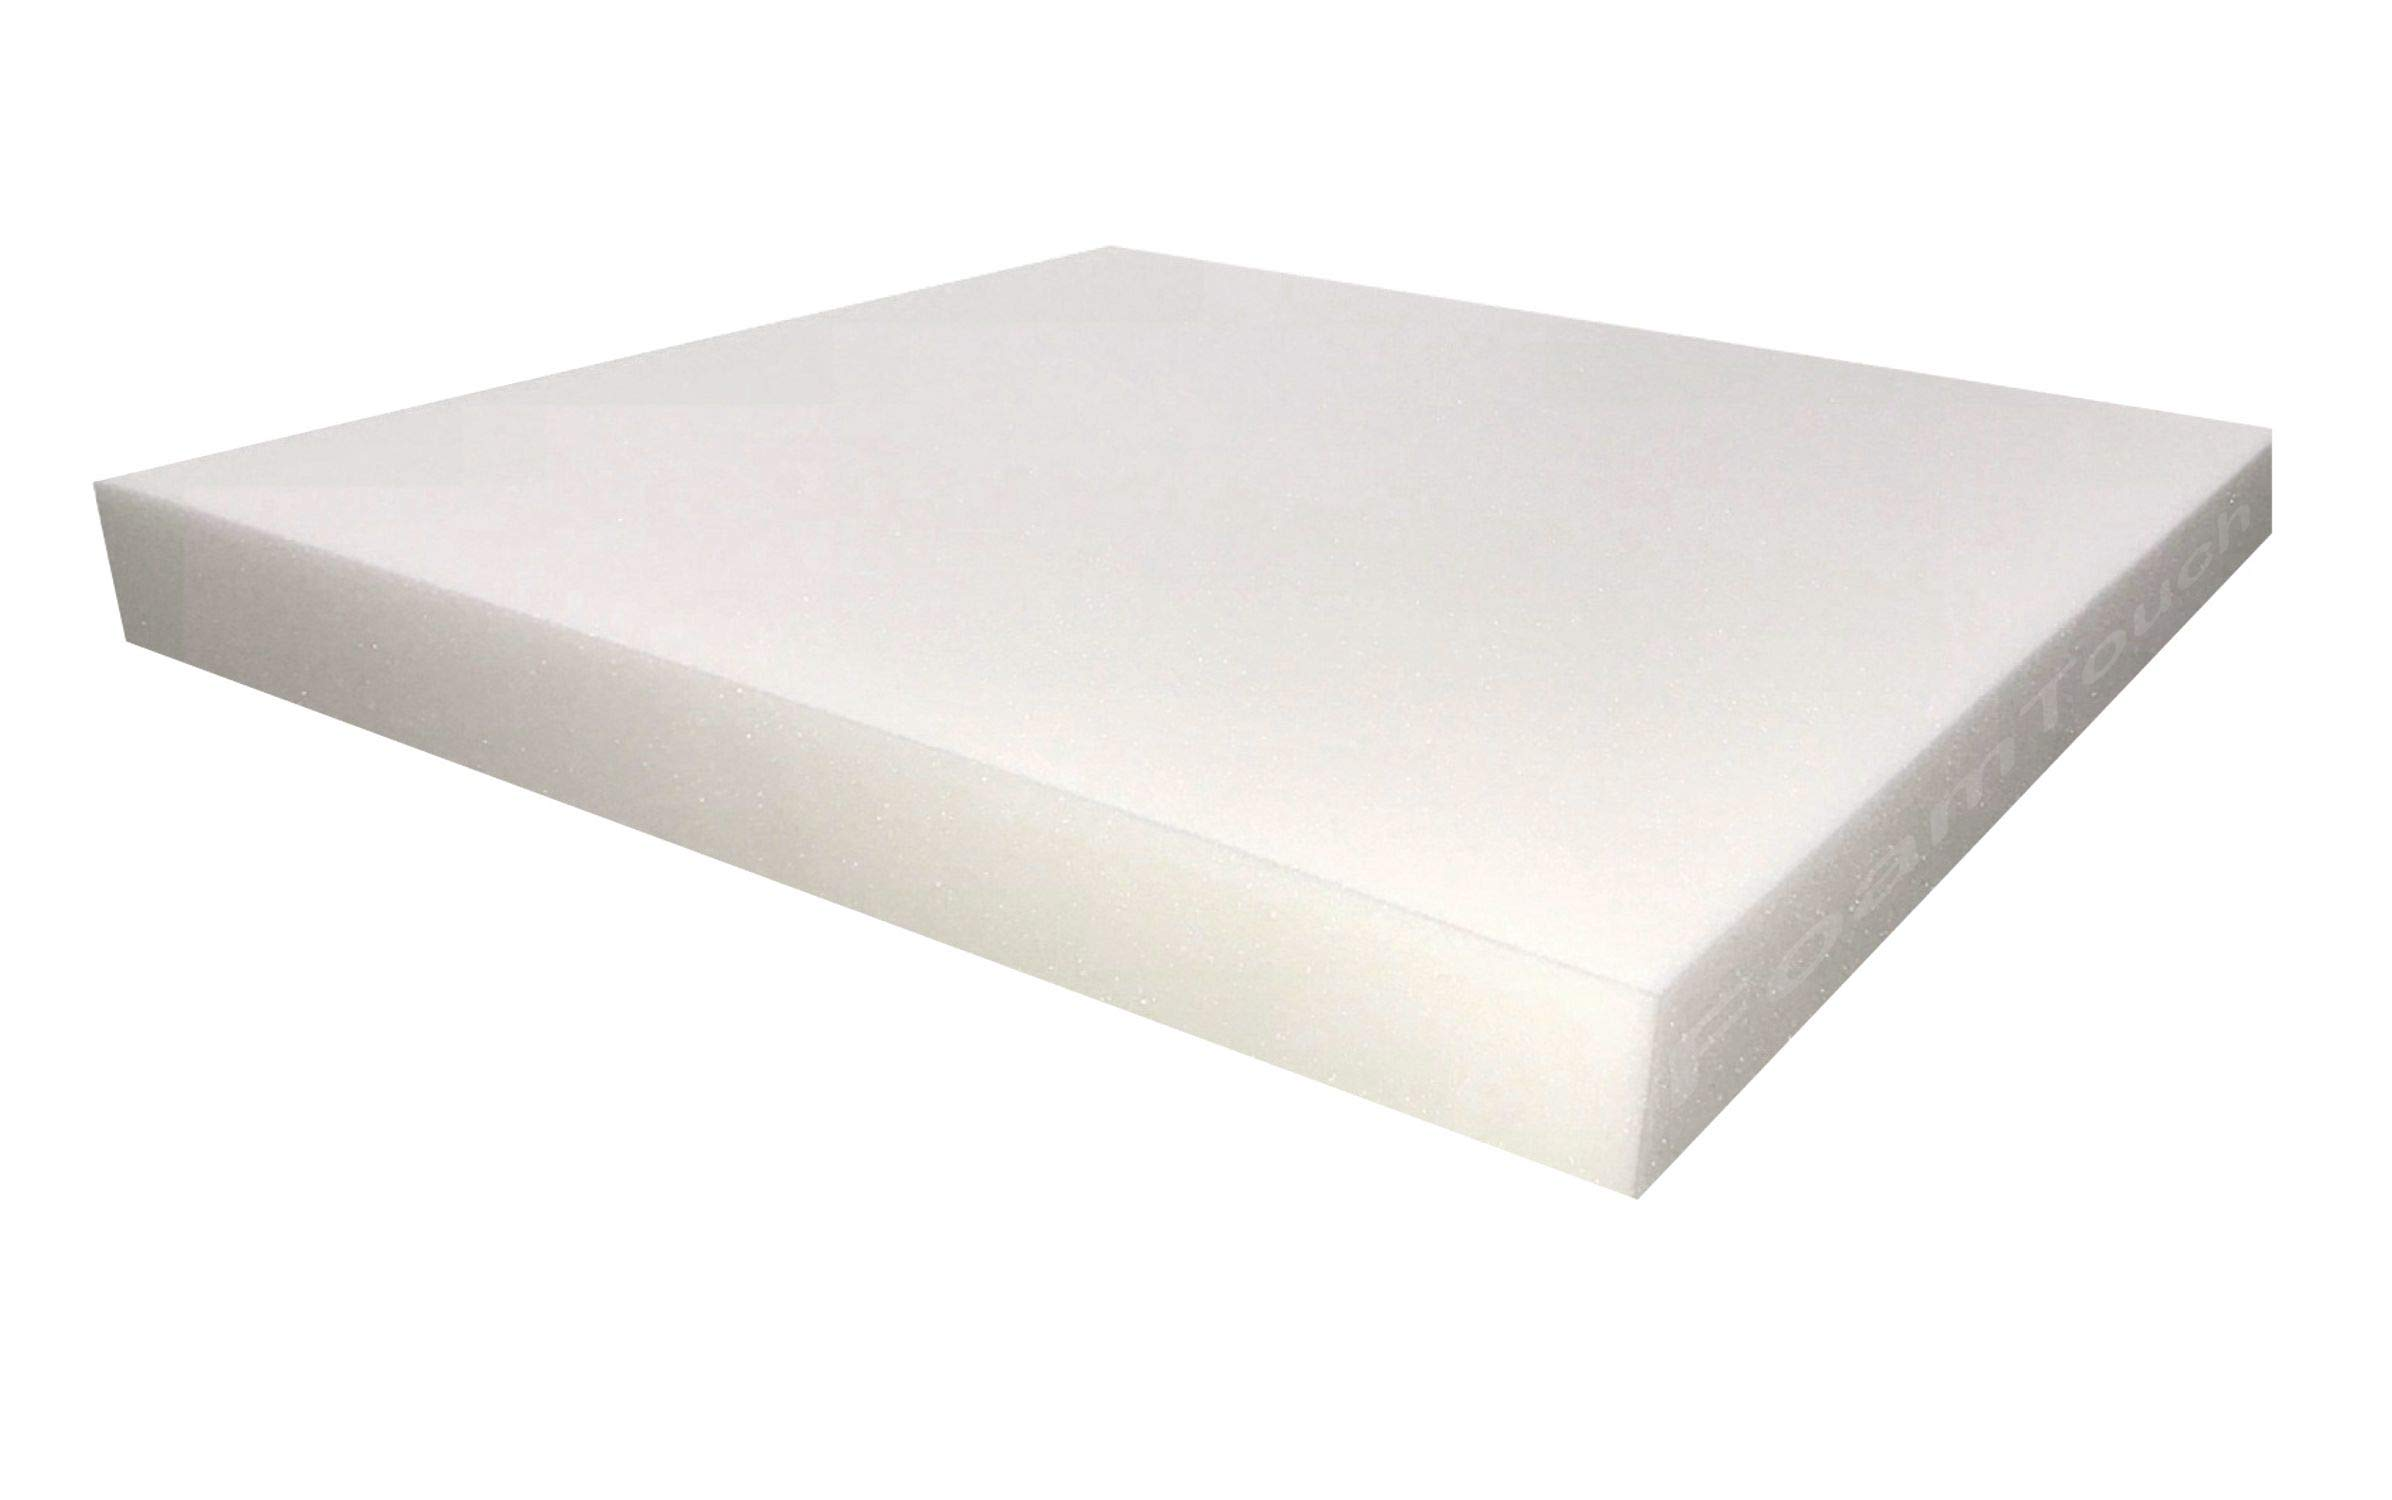 FoamTouch Upholstery Cushion Density Height